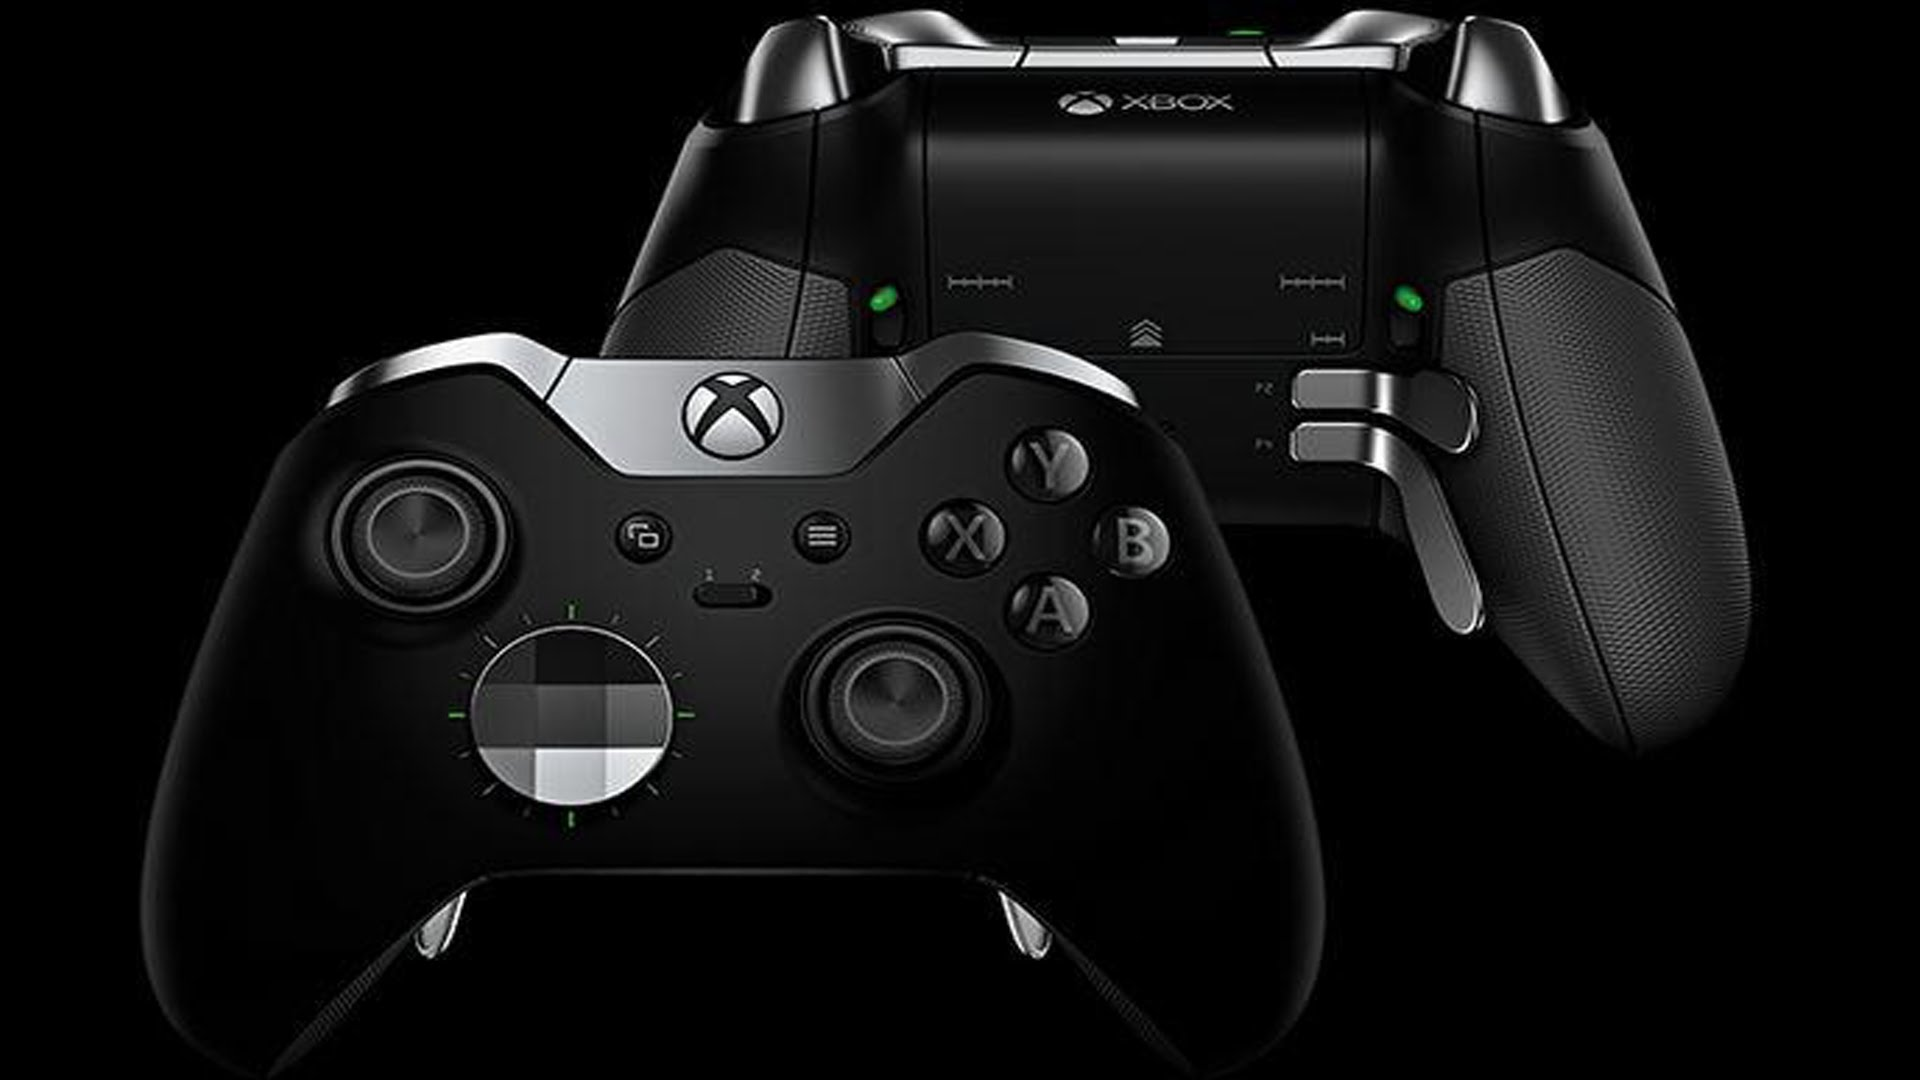 Xbox Exec Comments on New Elite Controller Rumors